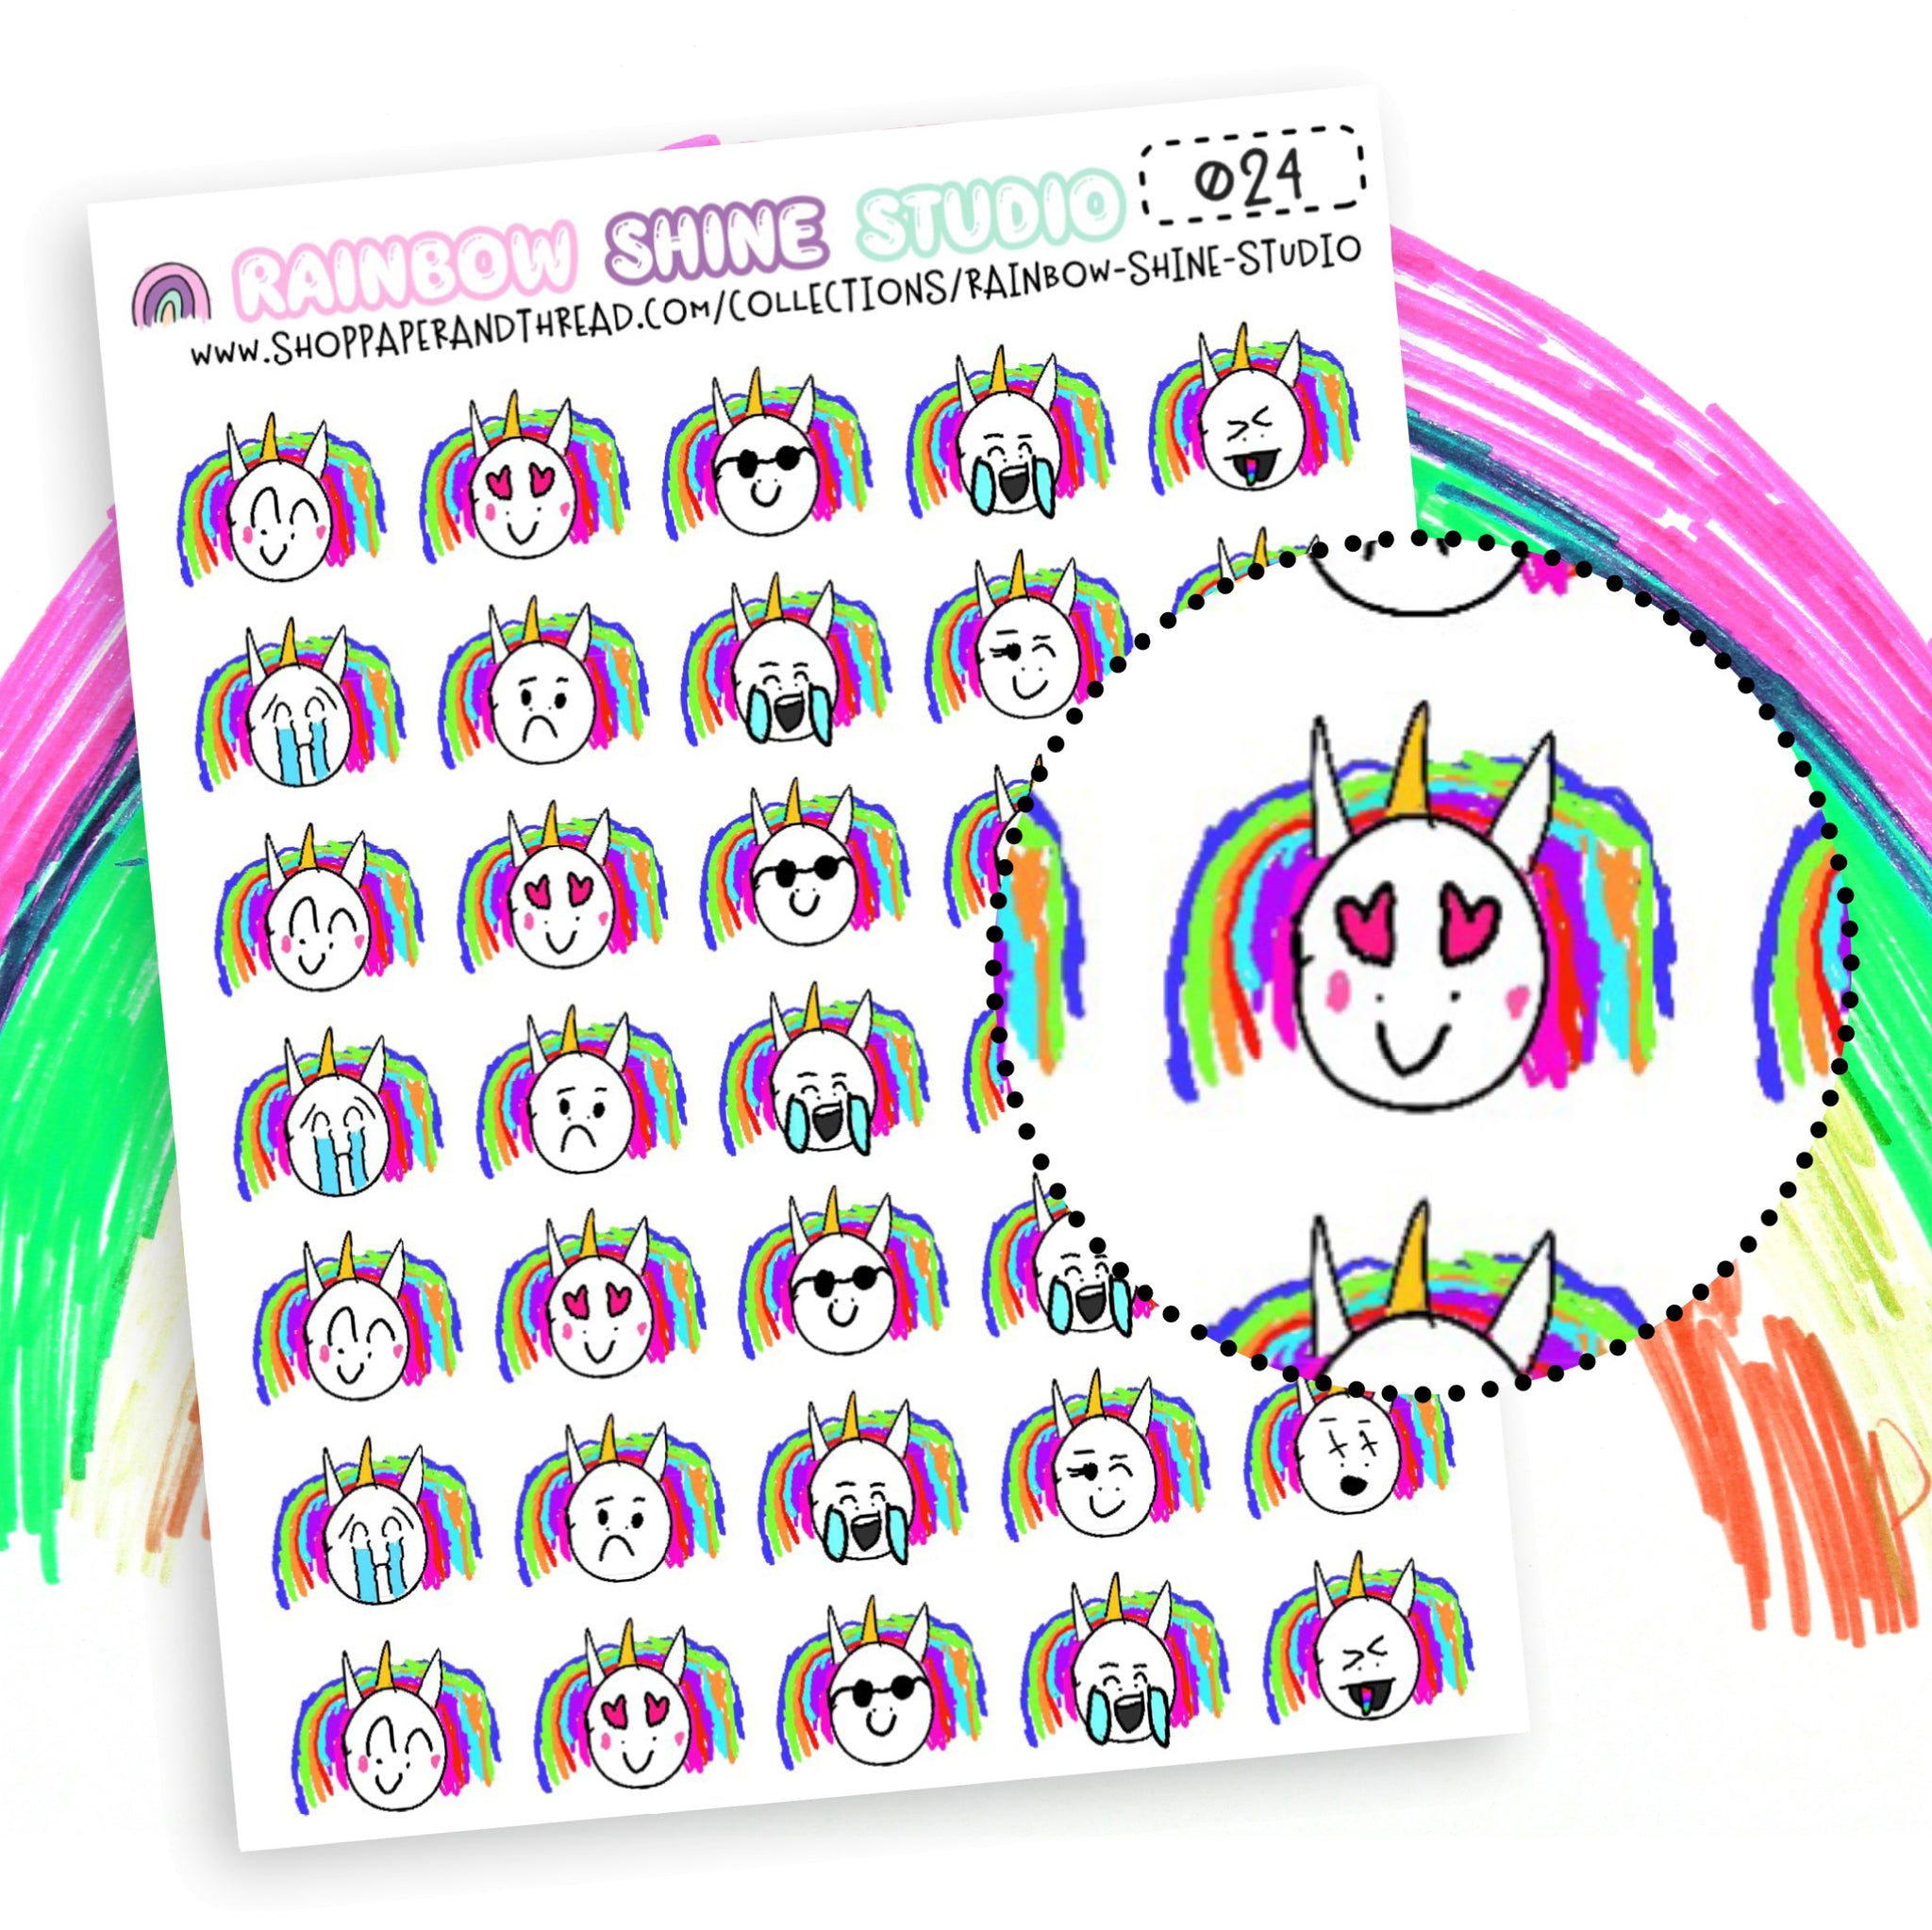 Emoji Planner Stickers - Unicorn Planner Stickers - Sparkles The Unicorn Planner Stickers - Rainbow Planner Stickers - Doodle Planner